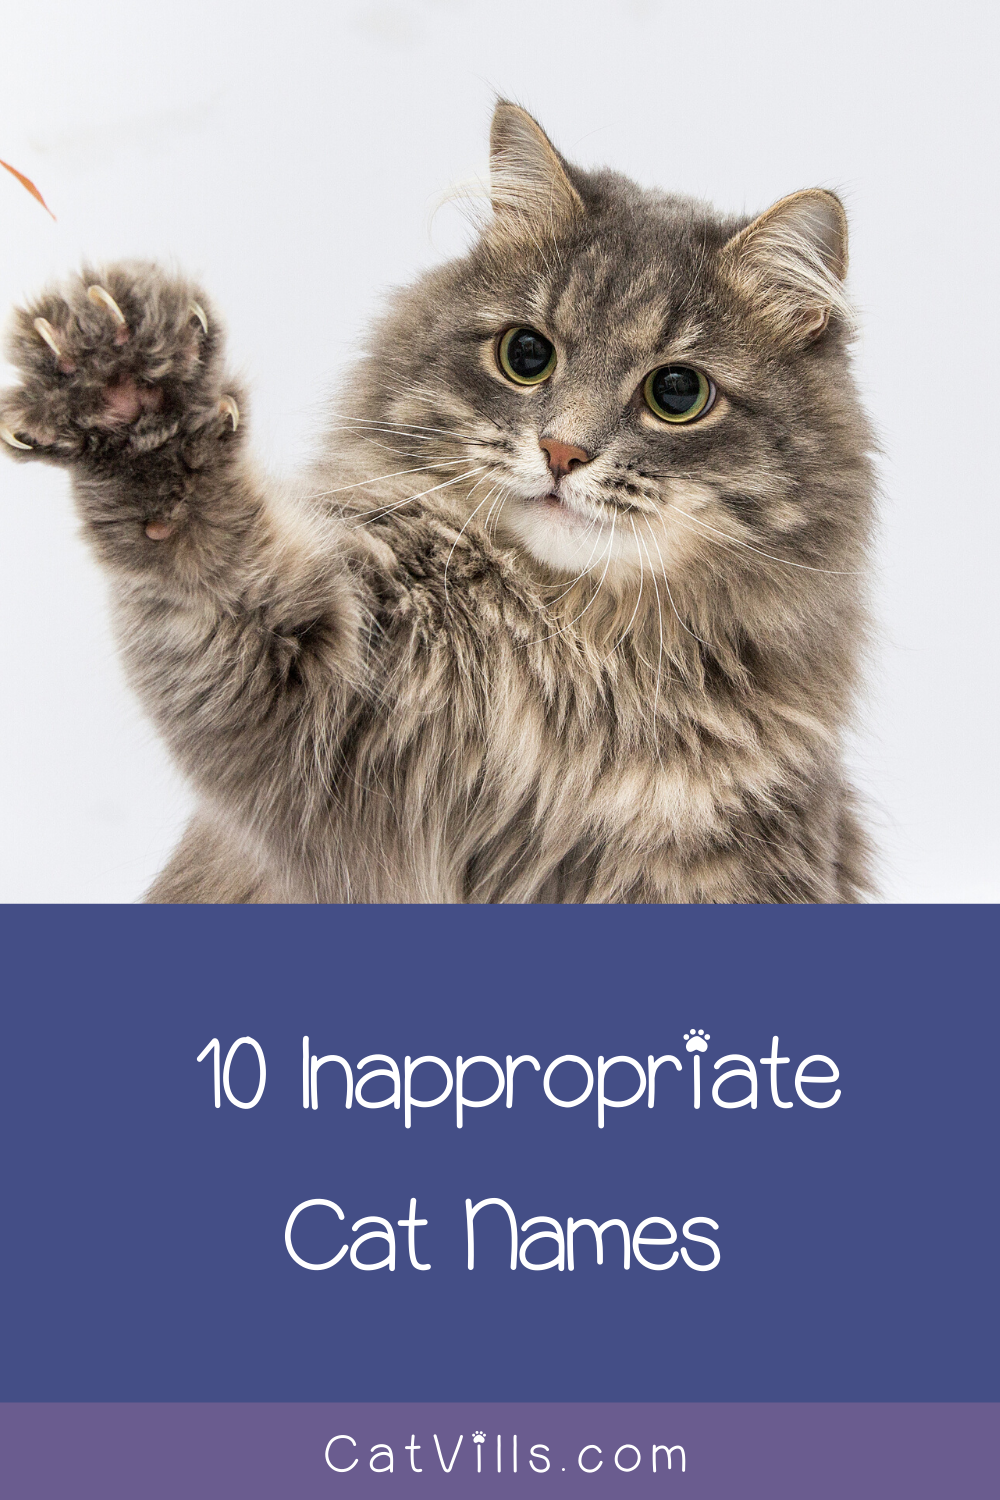 10 Inappropriate Names to Call a Cat Cat names, Cats